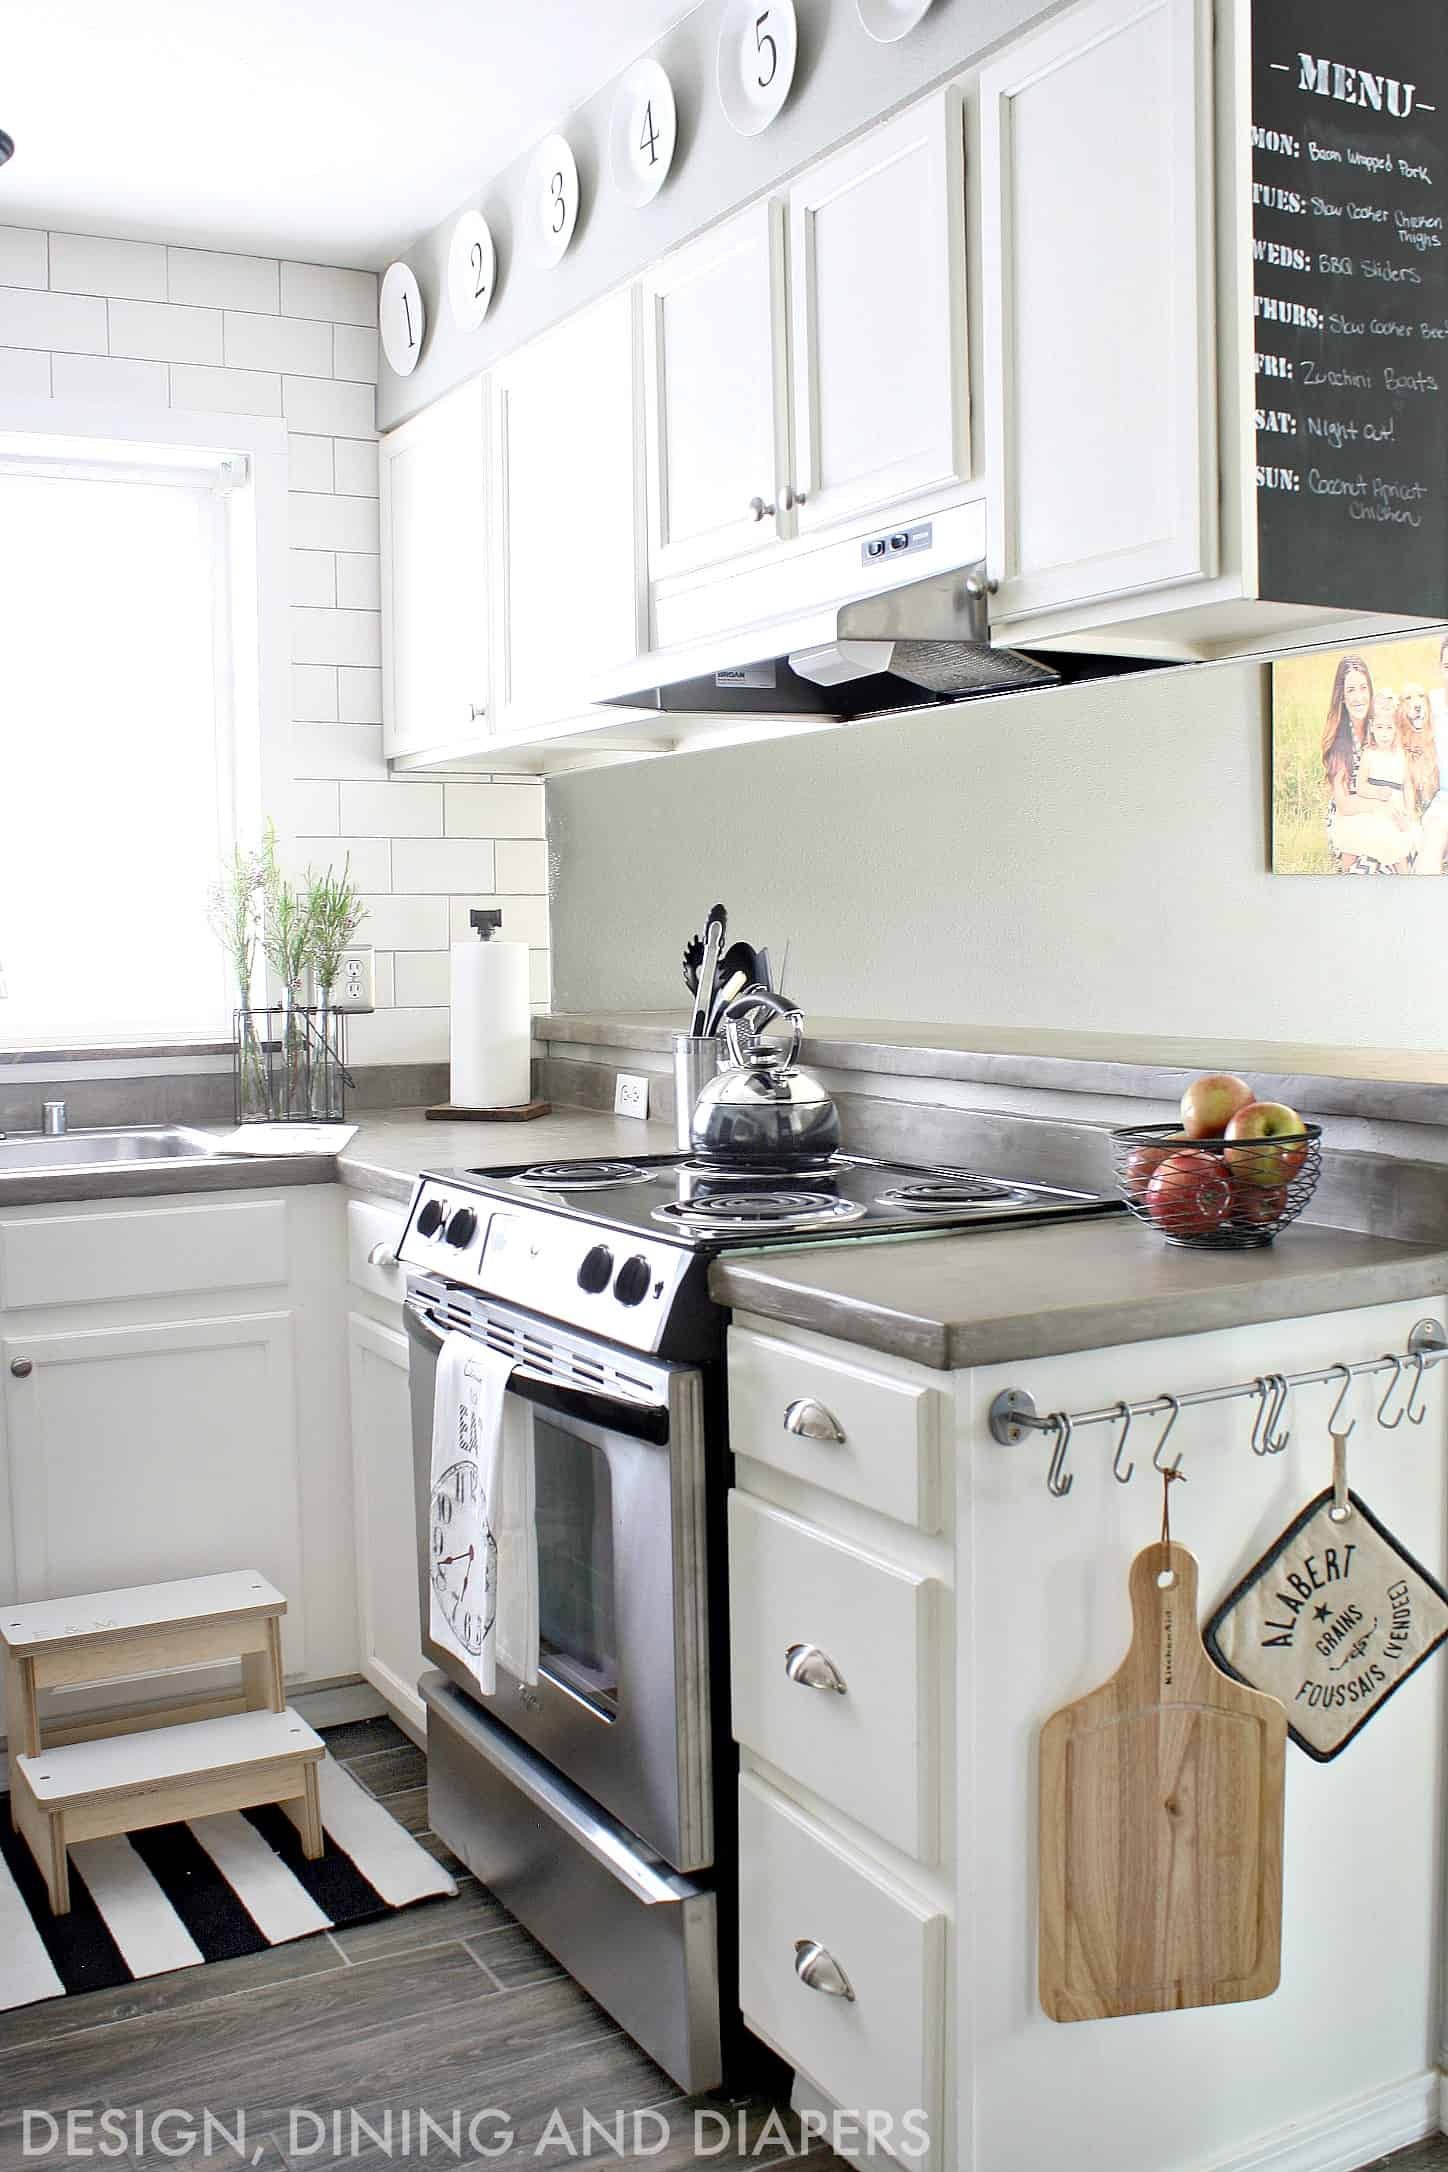 The Best 100+ Exciting Cook Stoves At Lowes Image Collections ...